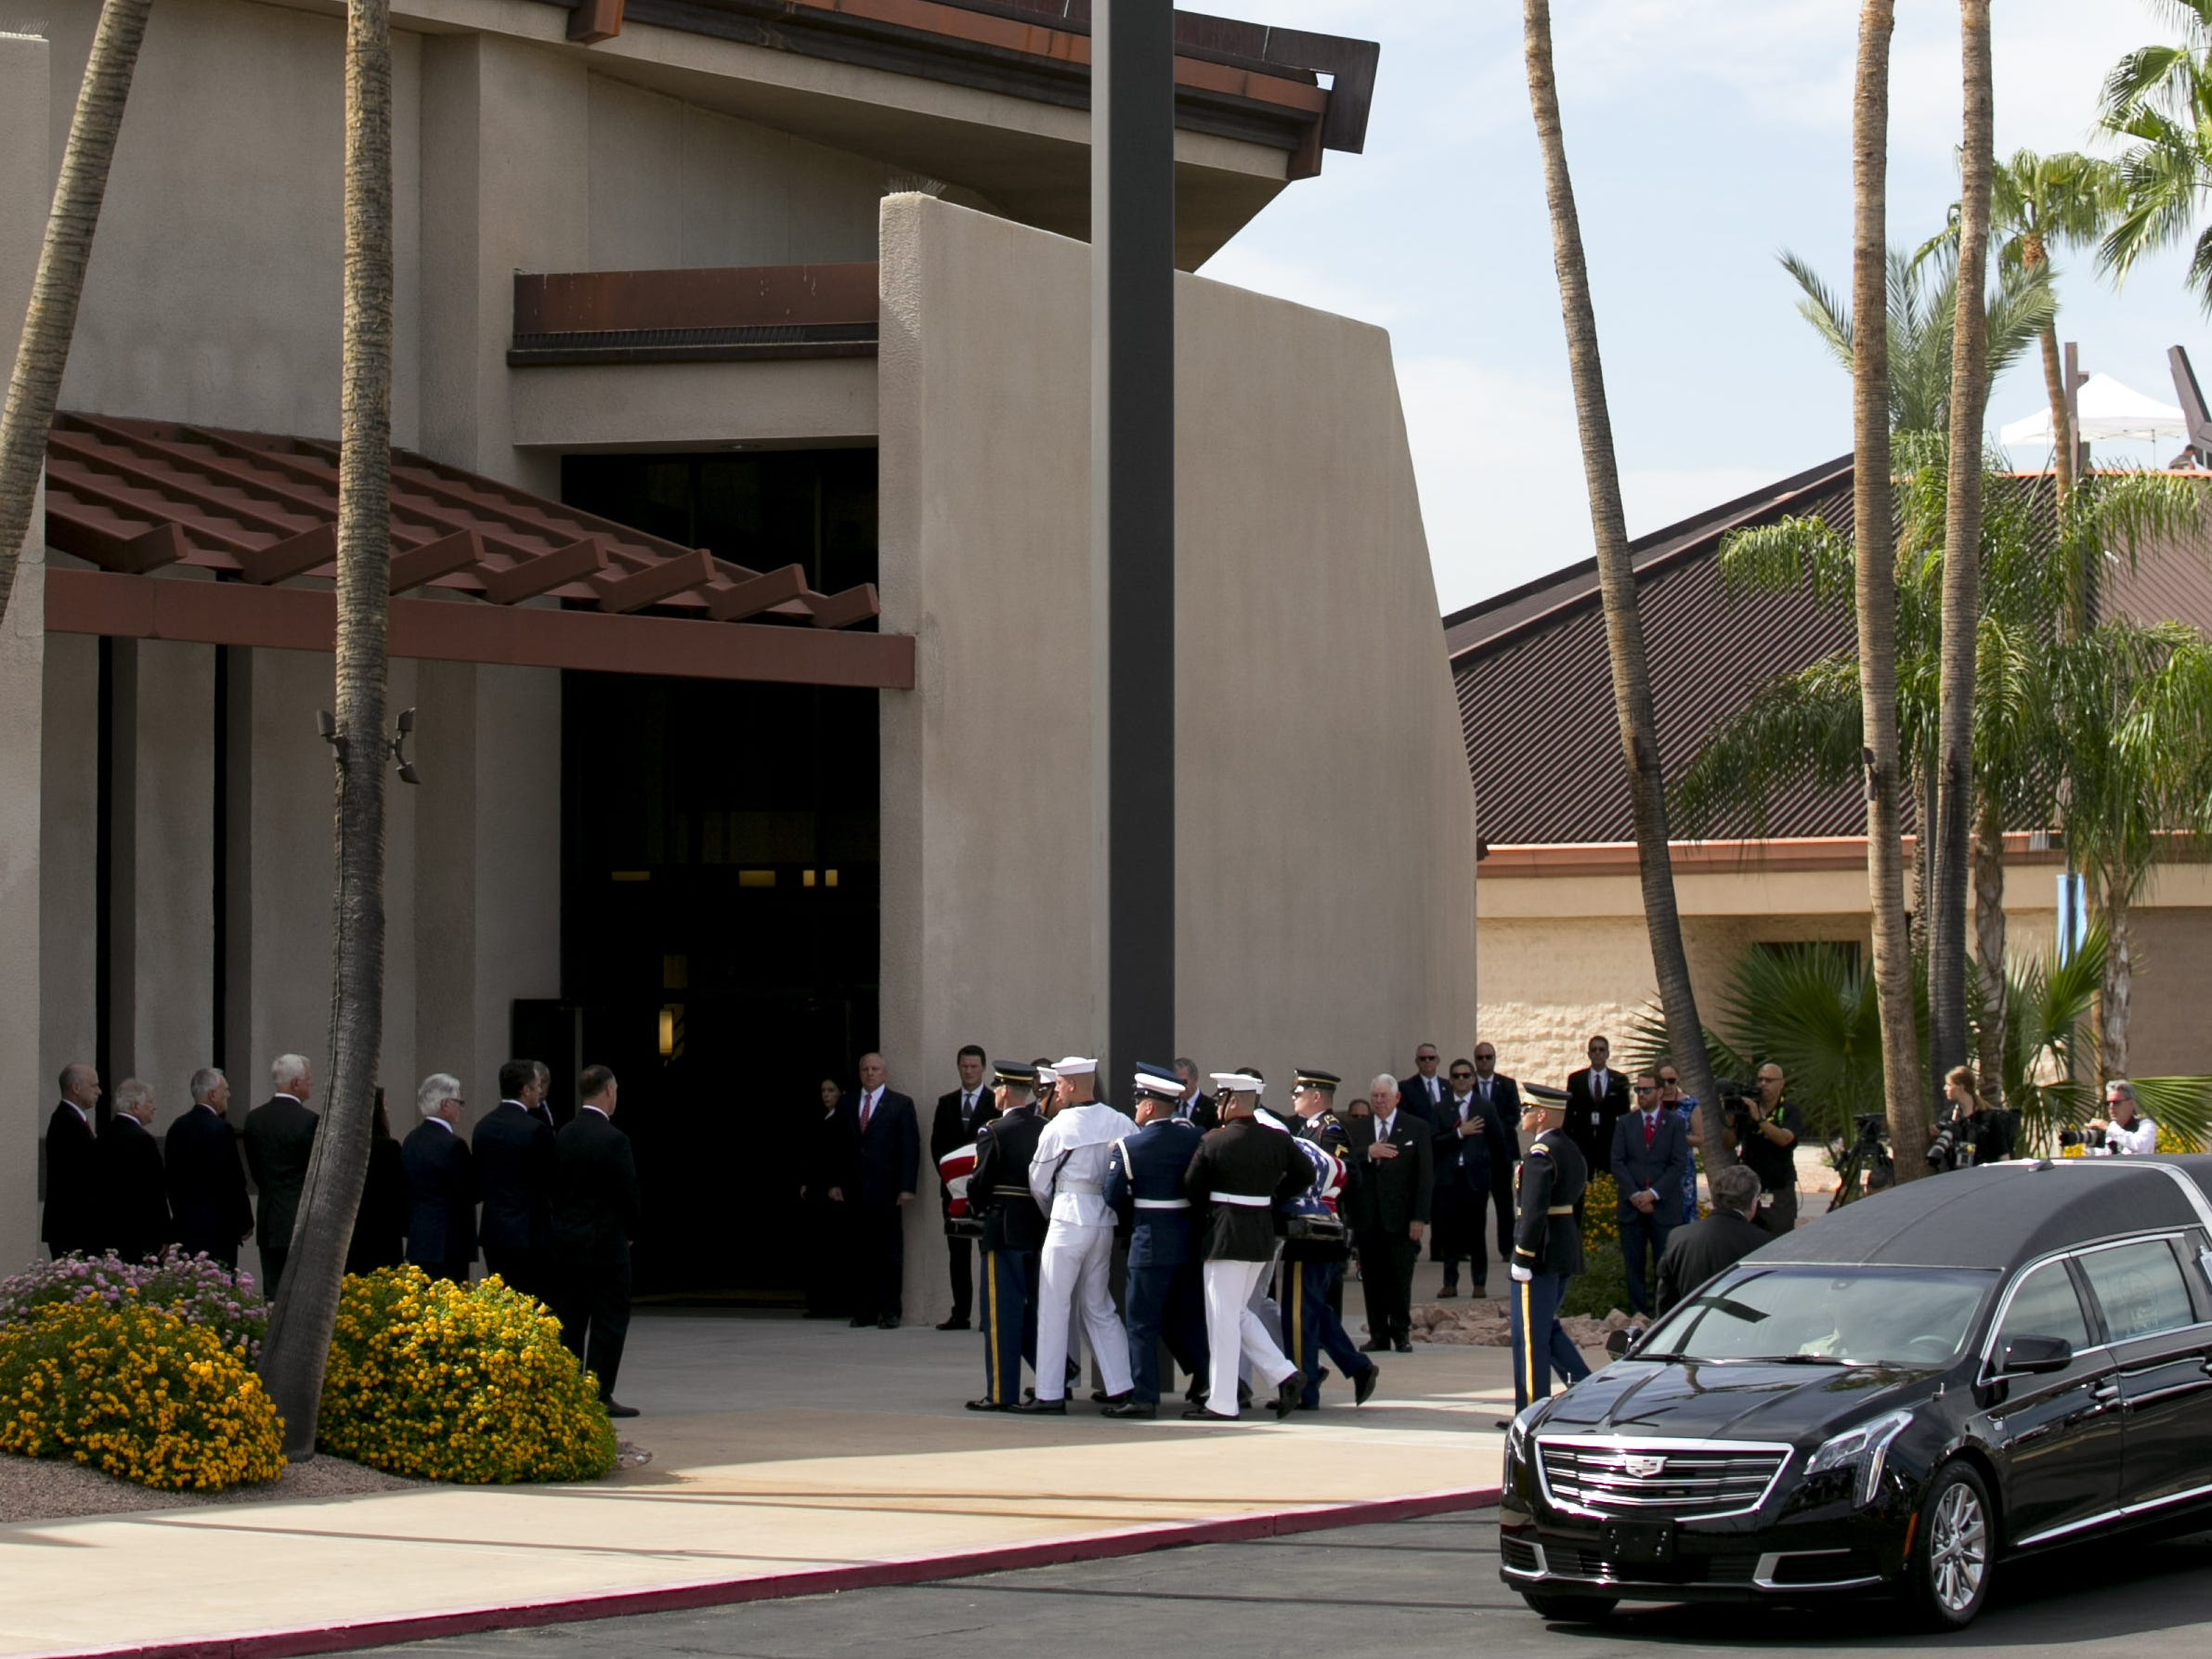 Senator John McCain's flag-draped casket is carried by members of the United States military during a memorial service for Senator John McCain at North Phoenix Baptist Church in Phoenix on Aug. 30, 2018.